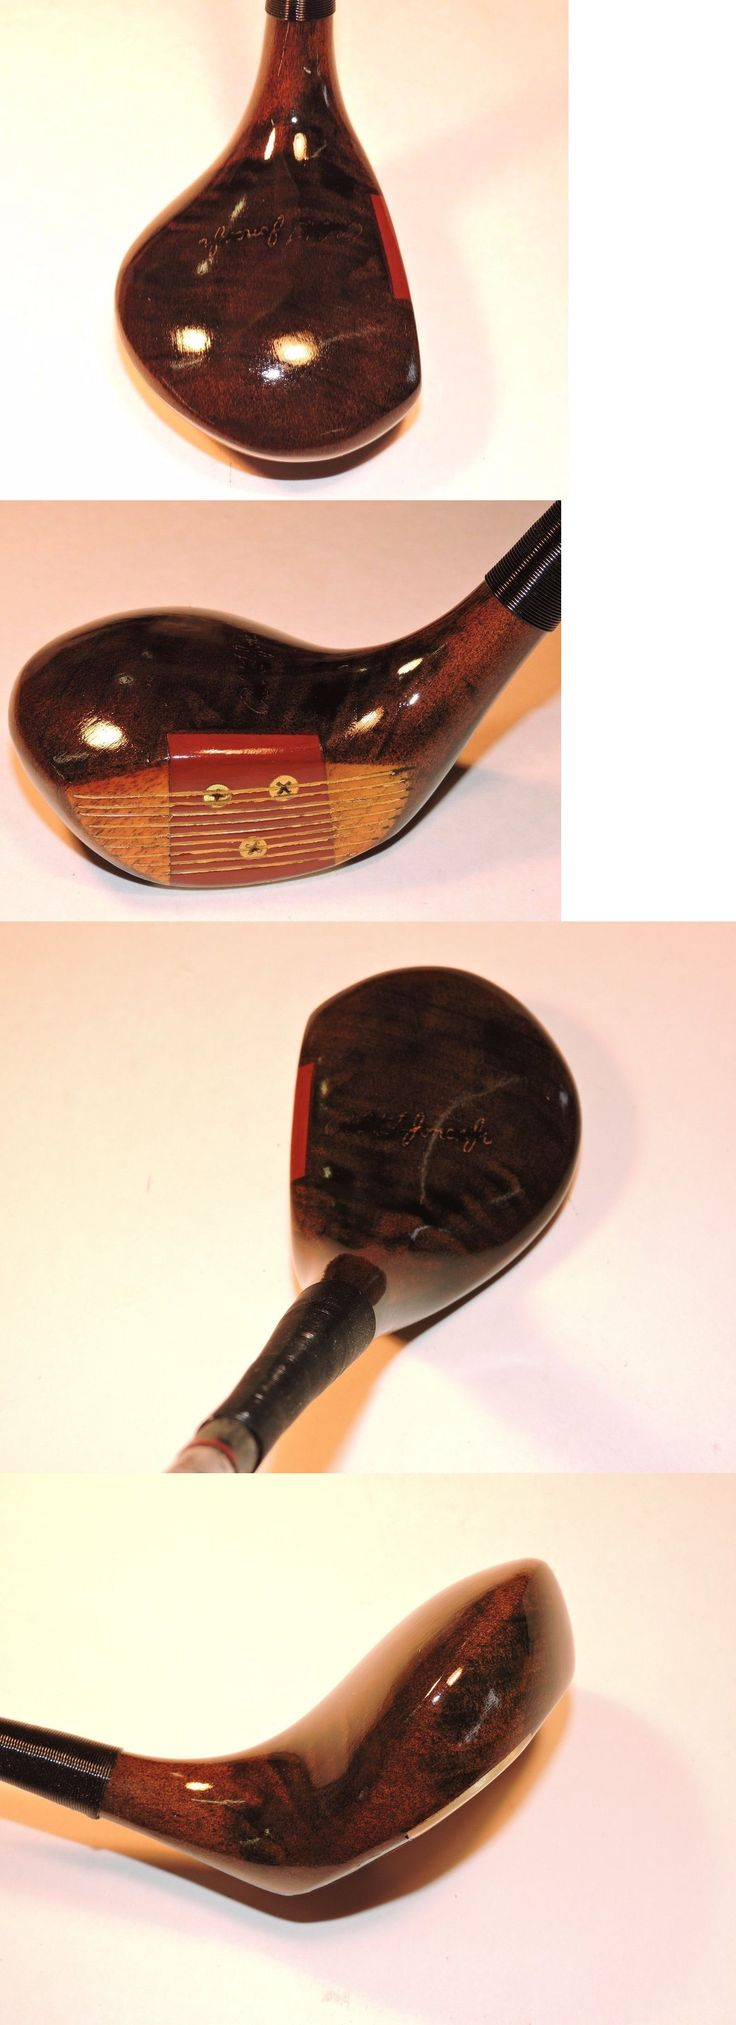 Vintage Golf Clubs and Shafts 83043: Spalding Bobby Jones Registered Driver Vintage Persimmon Golf Club Rh Mens -> BUY IT NOW ONLY: $39.0 on eBay!